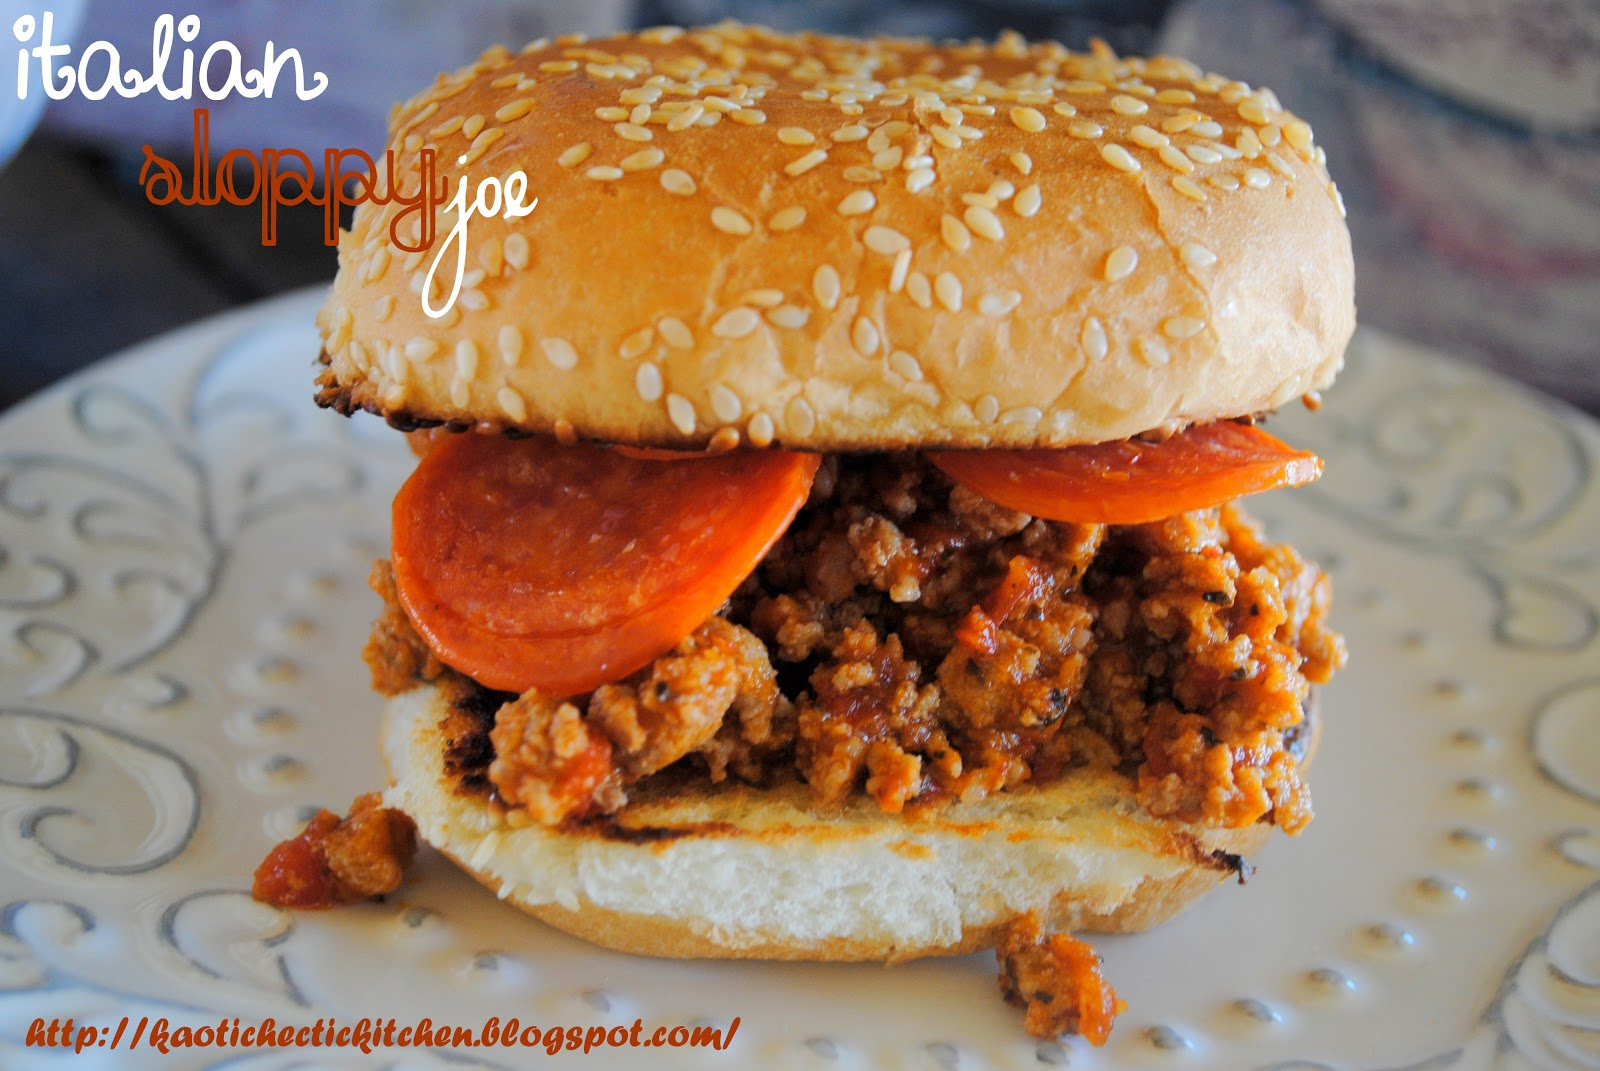 my kaotic kitchen: italian sloppy joes